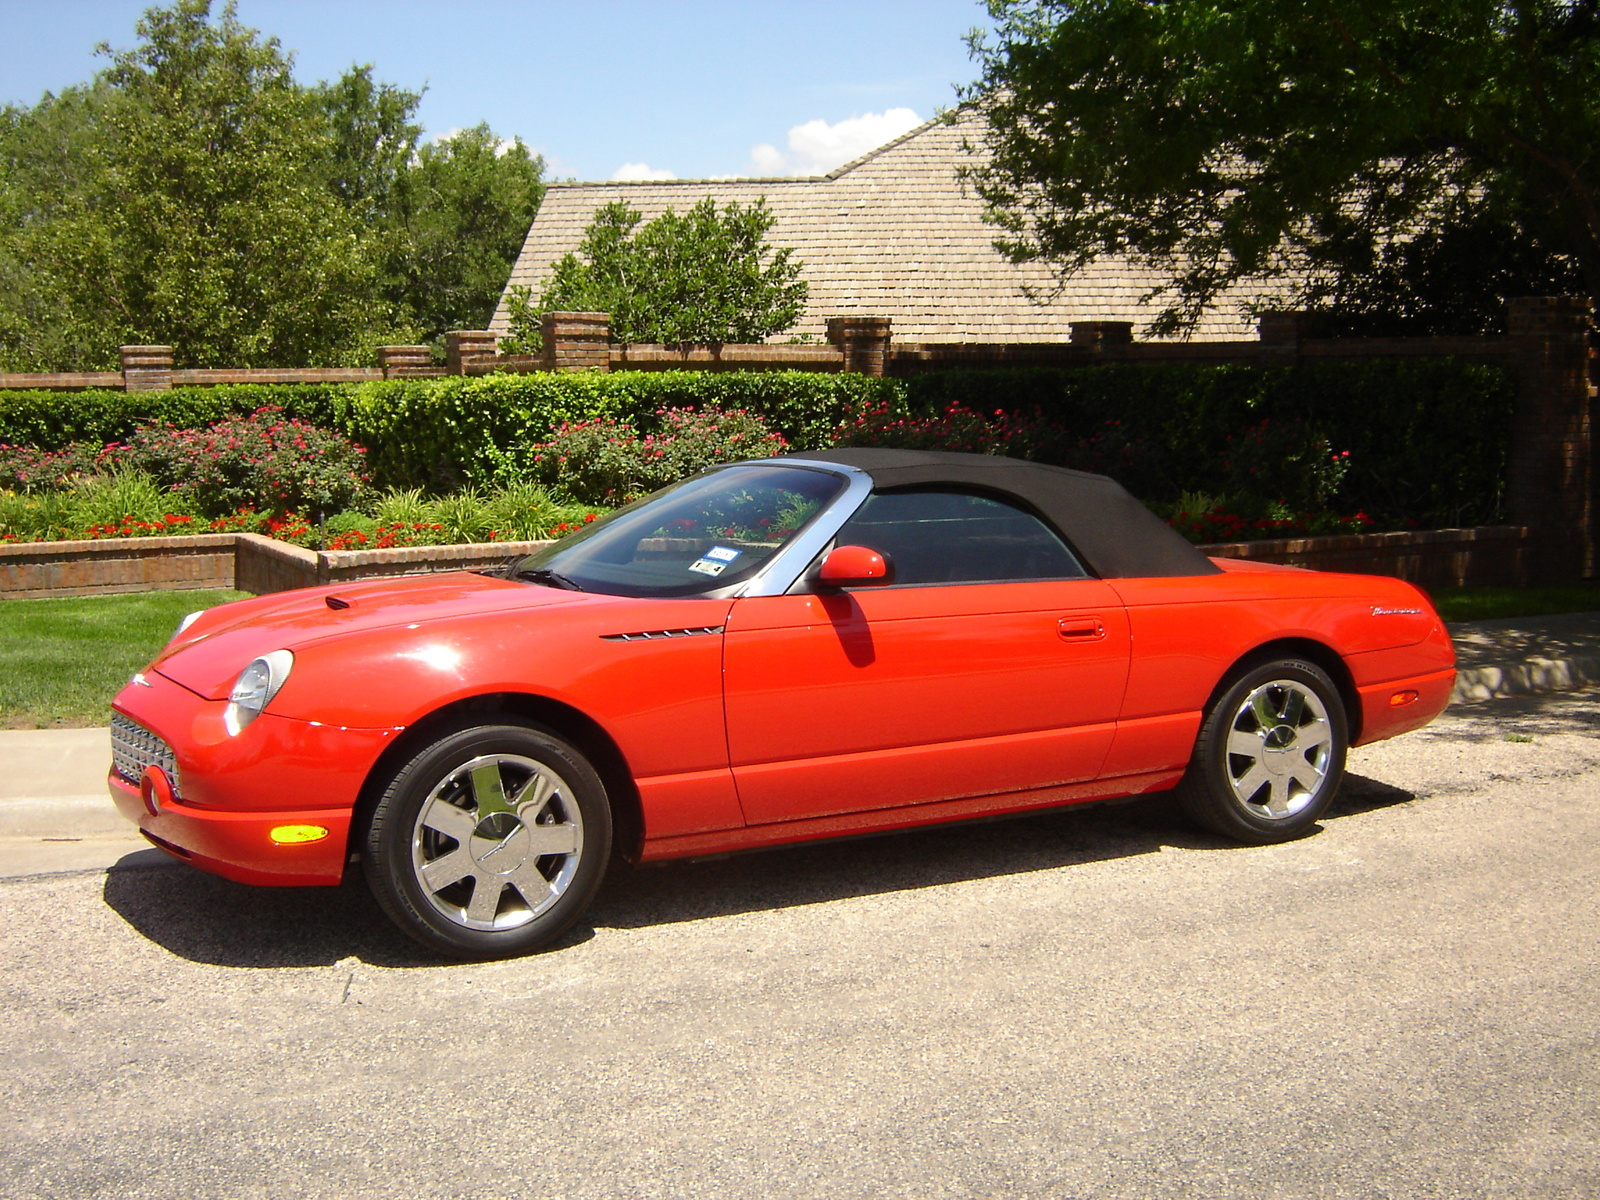 2002 ford thunderbird base convertible for sale cargurus autos post. Black Bedroom Furniture Sets. Home Design Ideas